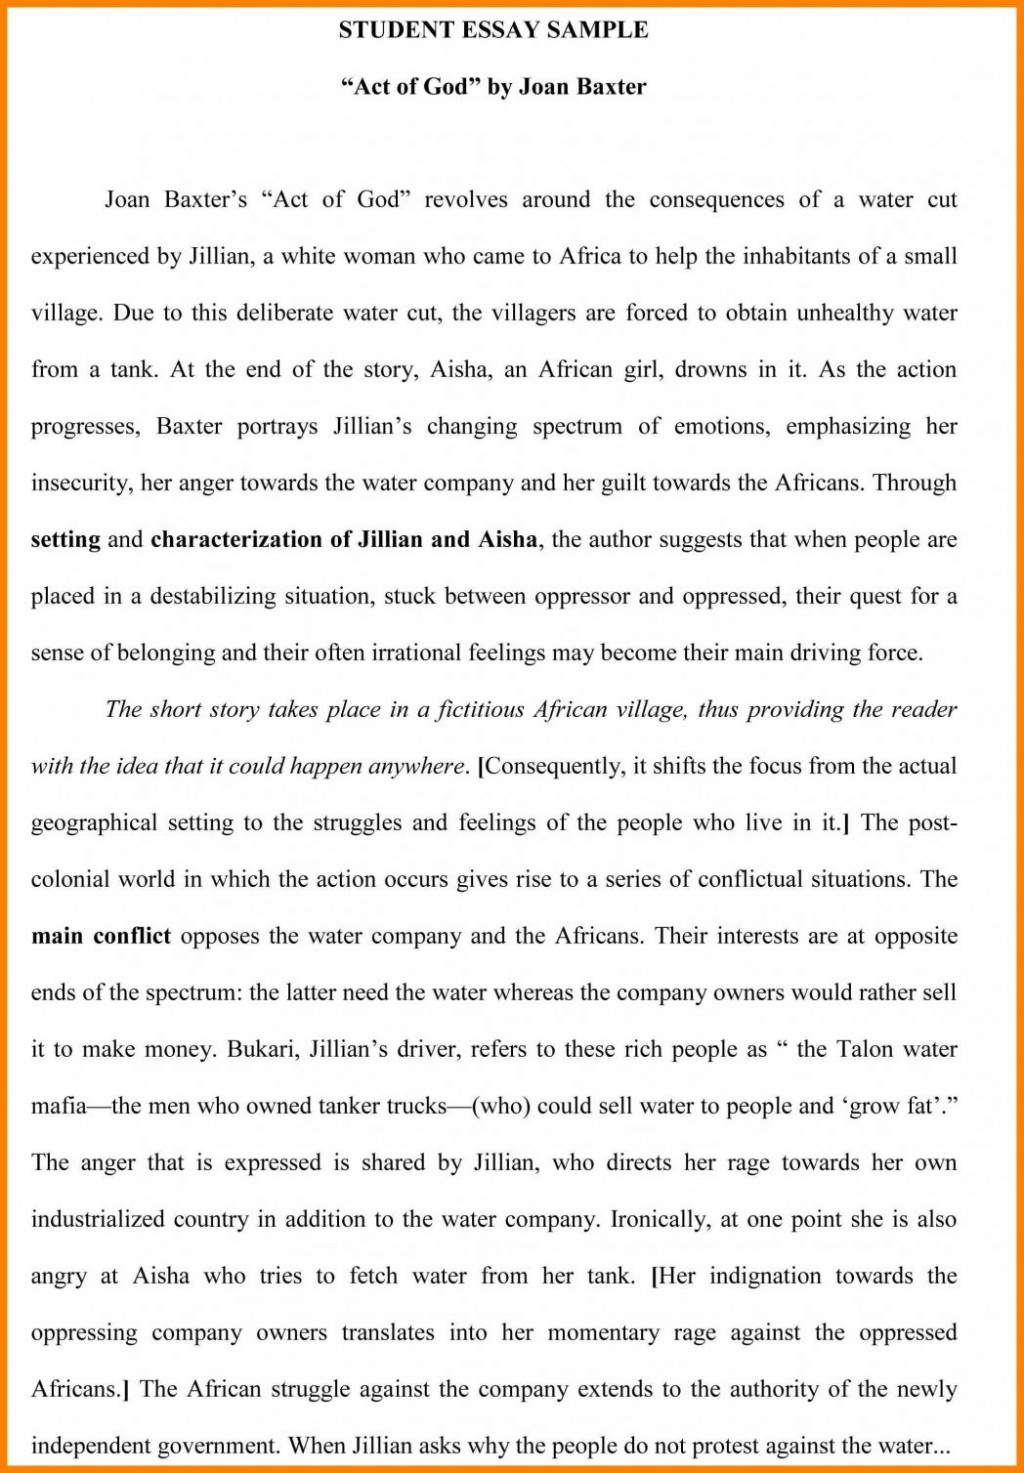 003 Examples Of Process Essays Pdf Essay Example College St Paper Sample Samples Ielts Topics How To Bake Cake Processchronological 1048x1508 Exceptional Do A Start Off You Write Analysis Large